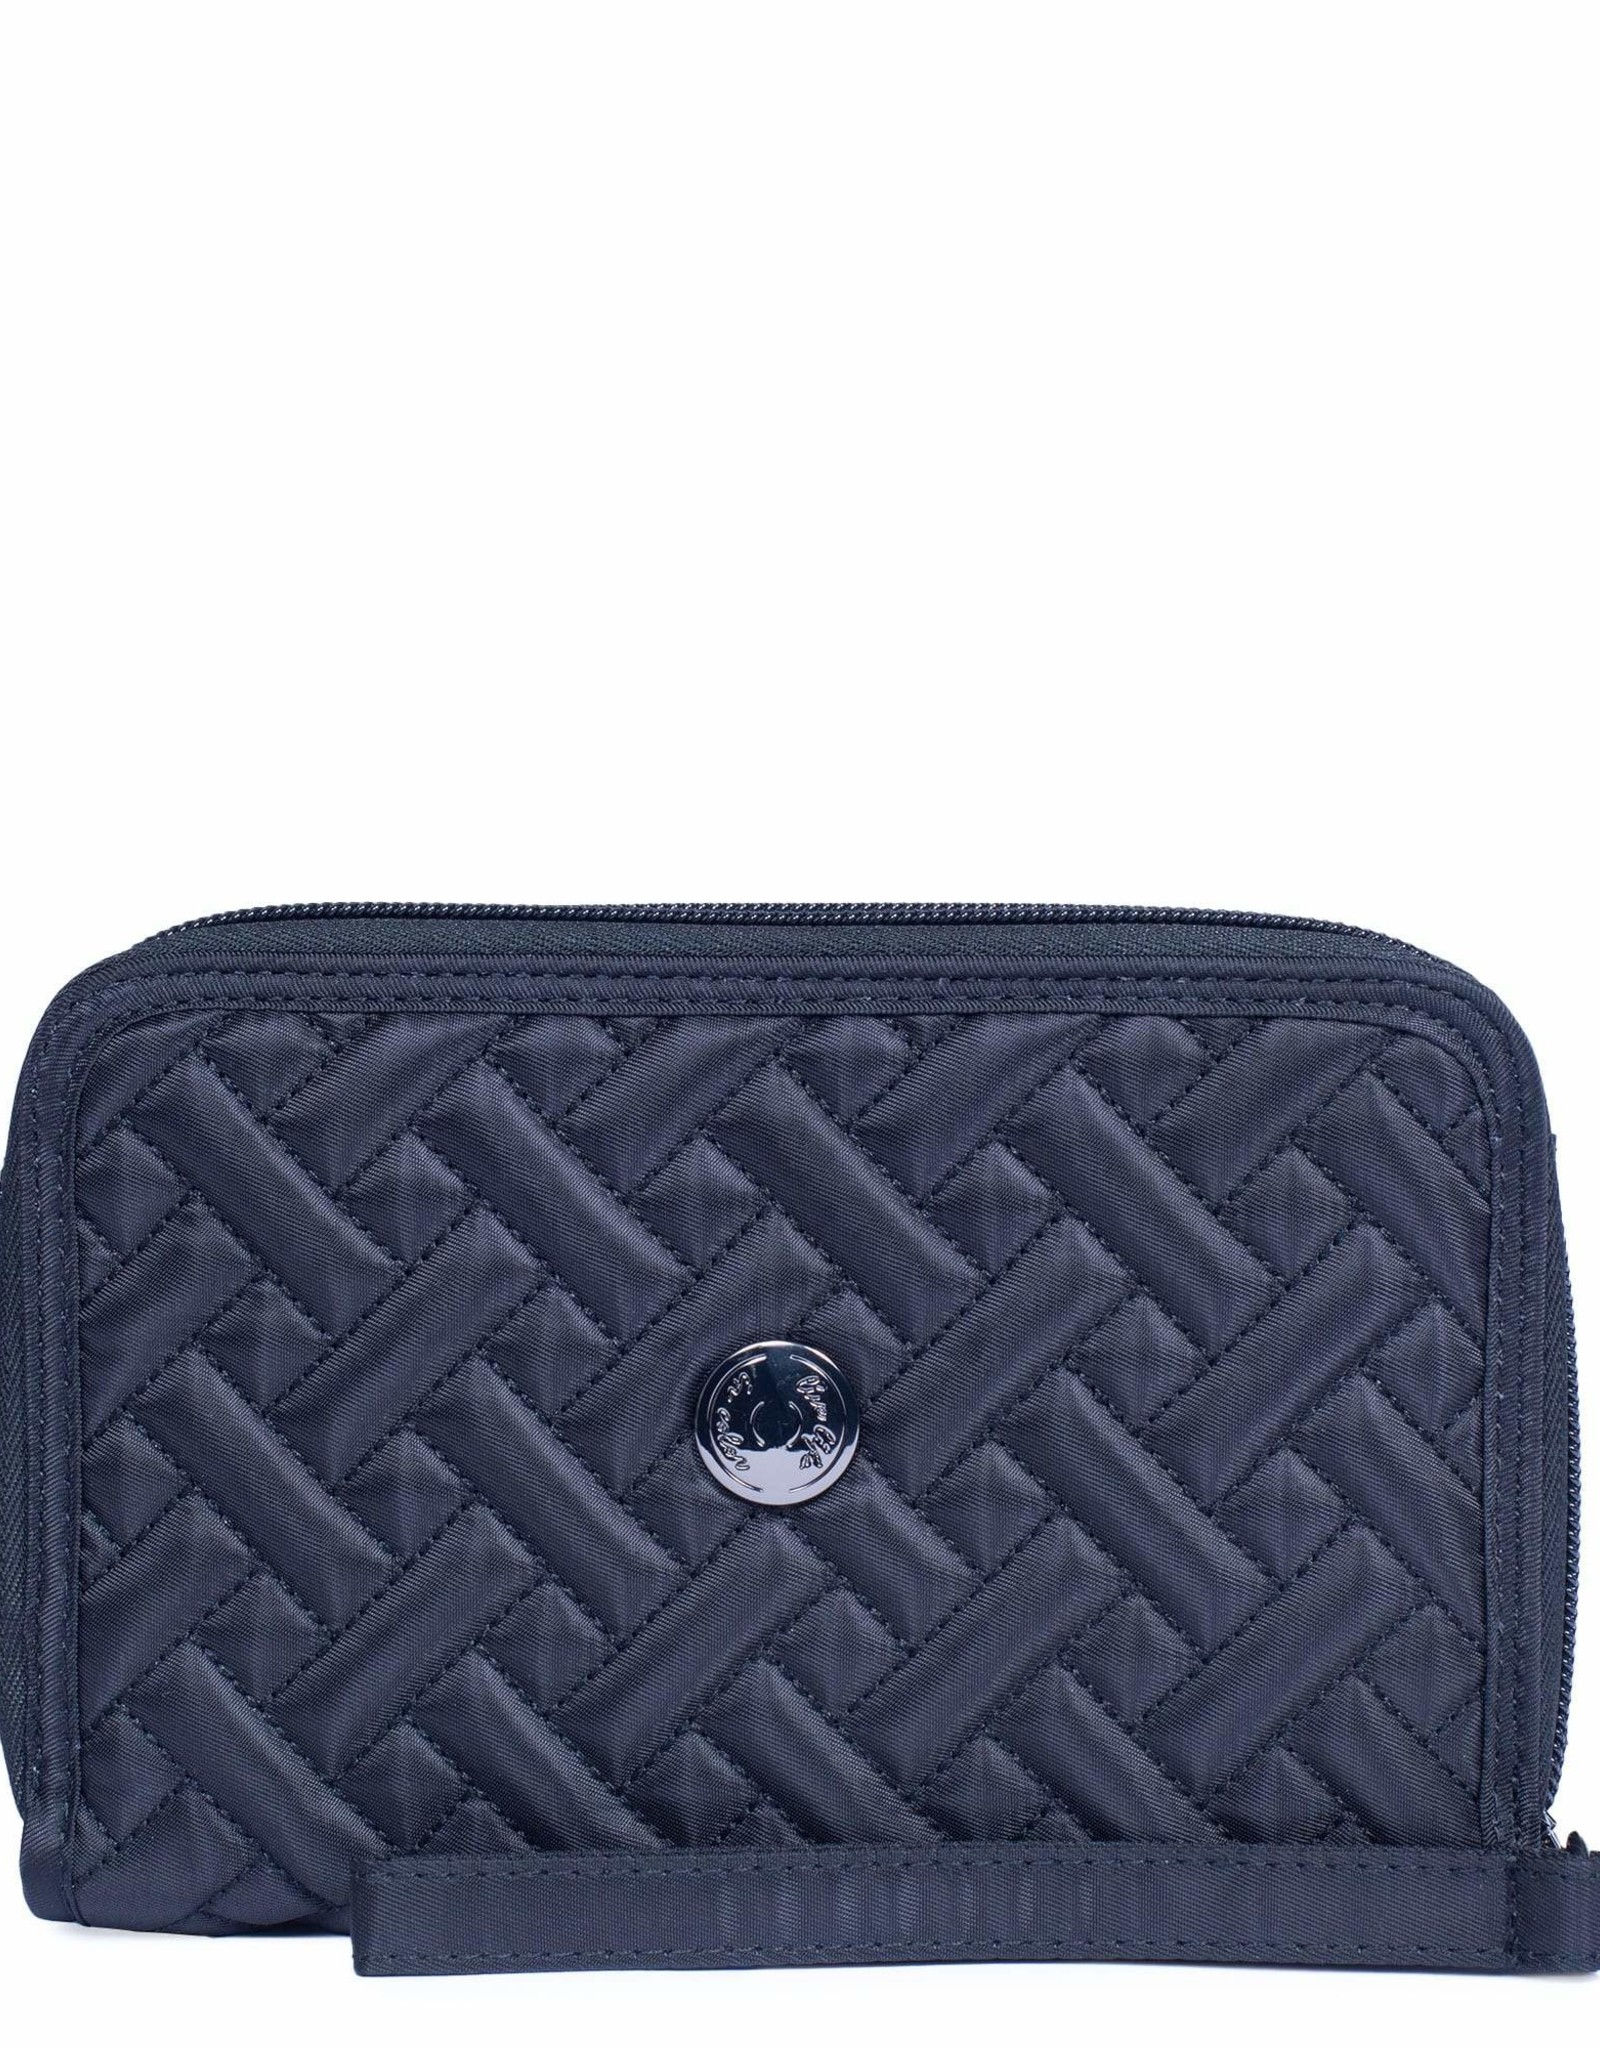 """Lug Lug Quickstep Convertible Travel Wallet with RFID. Fits a 6"""" phone"""